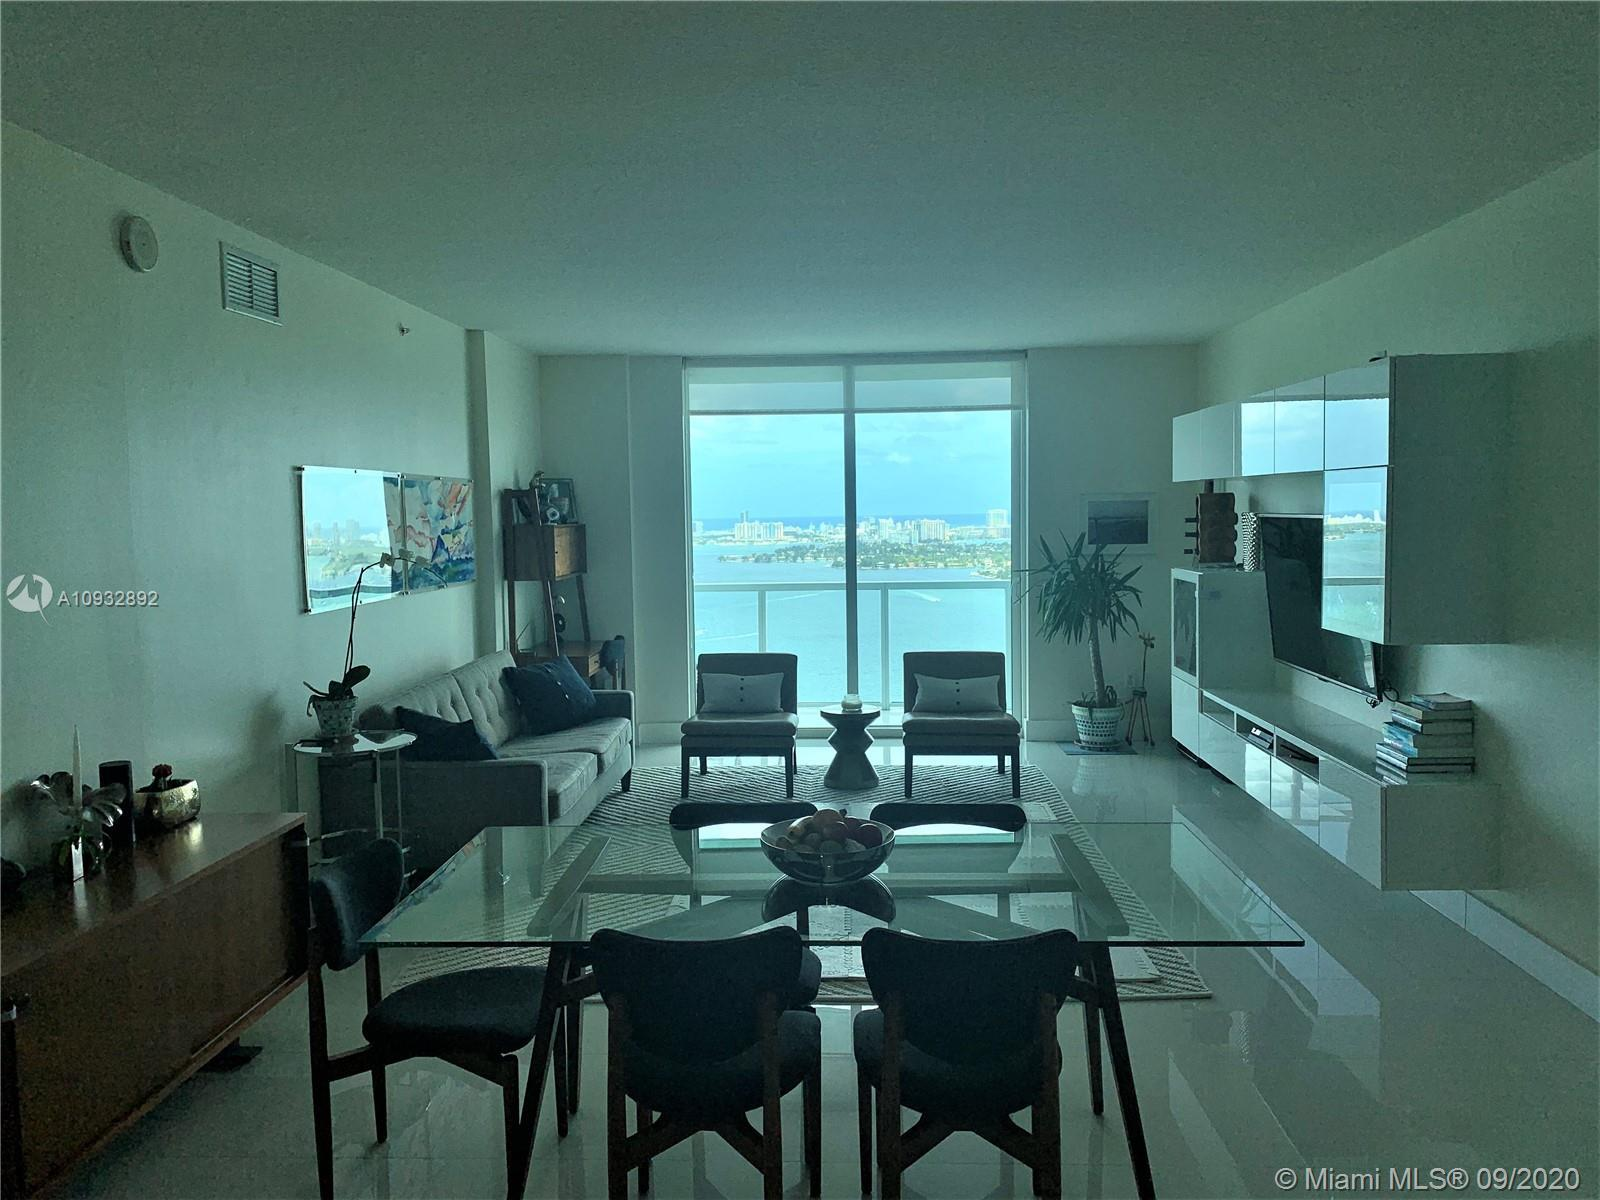 AMAZING 2 BEDS/2.5 BATHS UNIT @ QUANTUM ON THE BAY! WRAP AROUND BALCONY WITH BREATHTAKING PANORAMIC